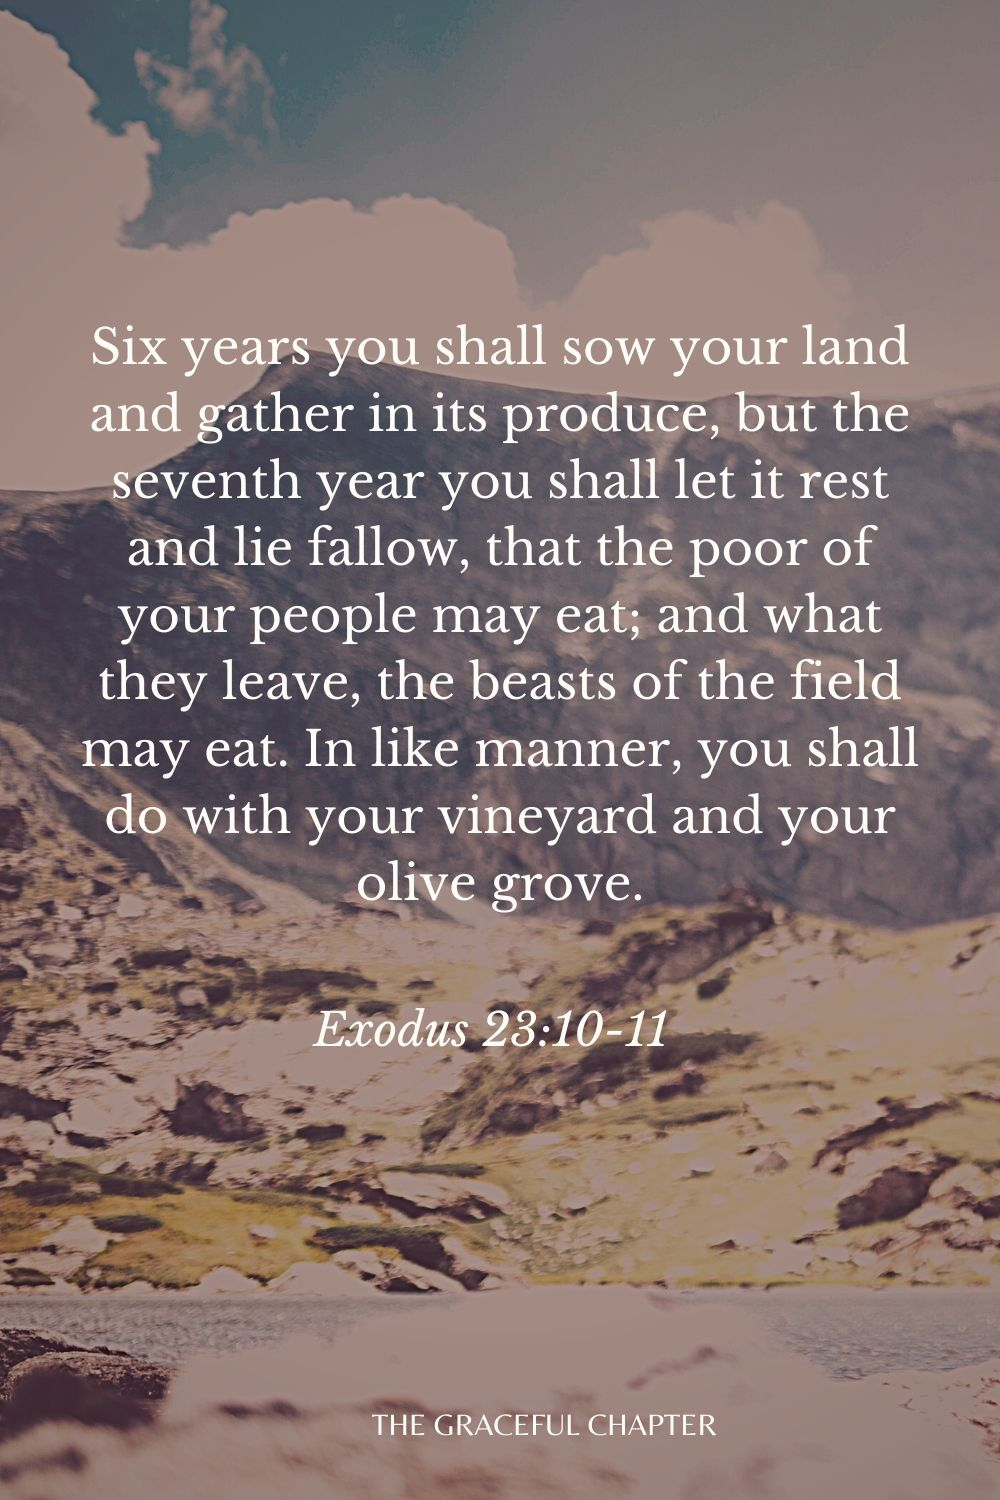 Six years you shall sow your land and gather in its produce, but the seventh year you shall let it rest and lie fallow, that the poor of your people may eat; and what they leave, the beasts of the field may eat. In like manner, you shall do with your vineyard and your olive grove. Exodus 23:10-11